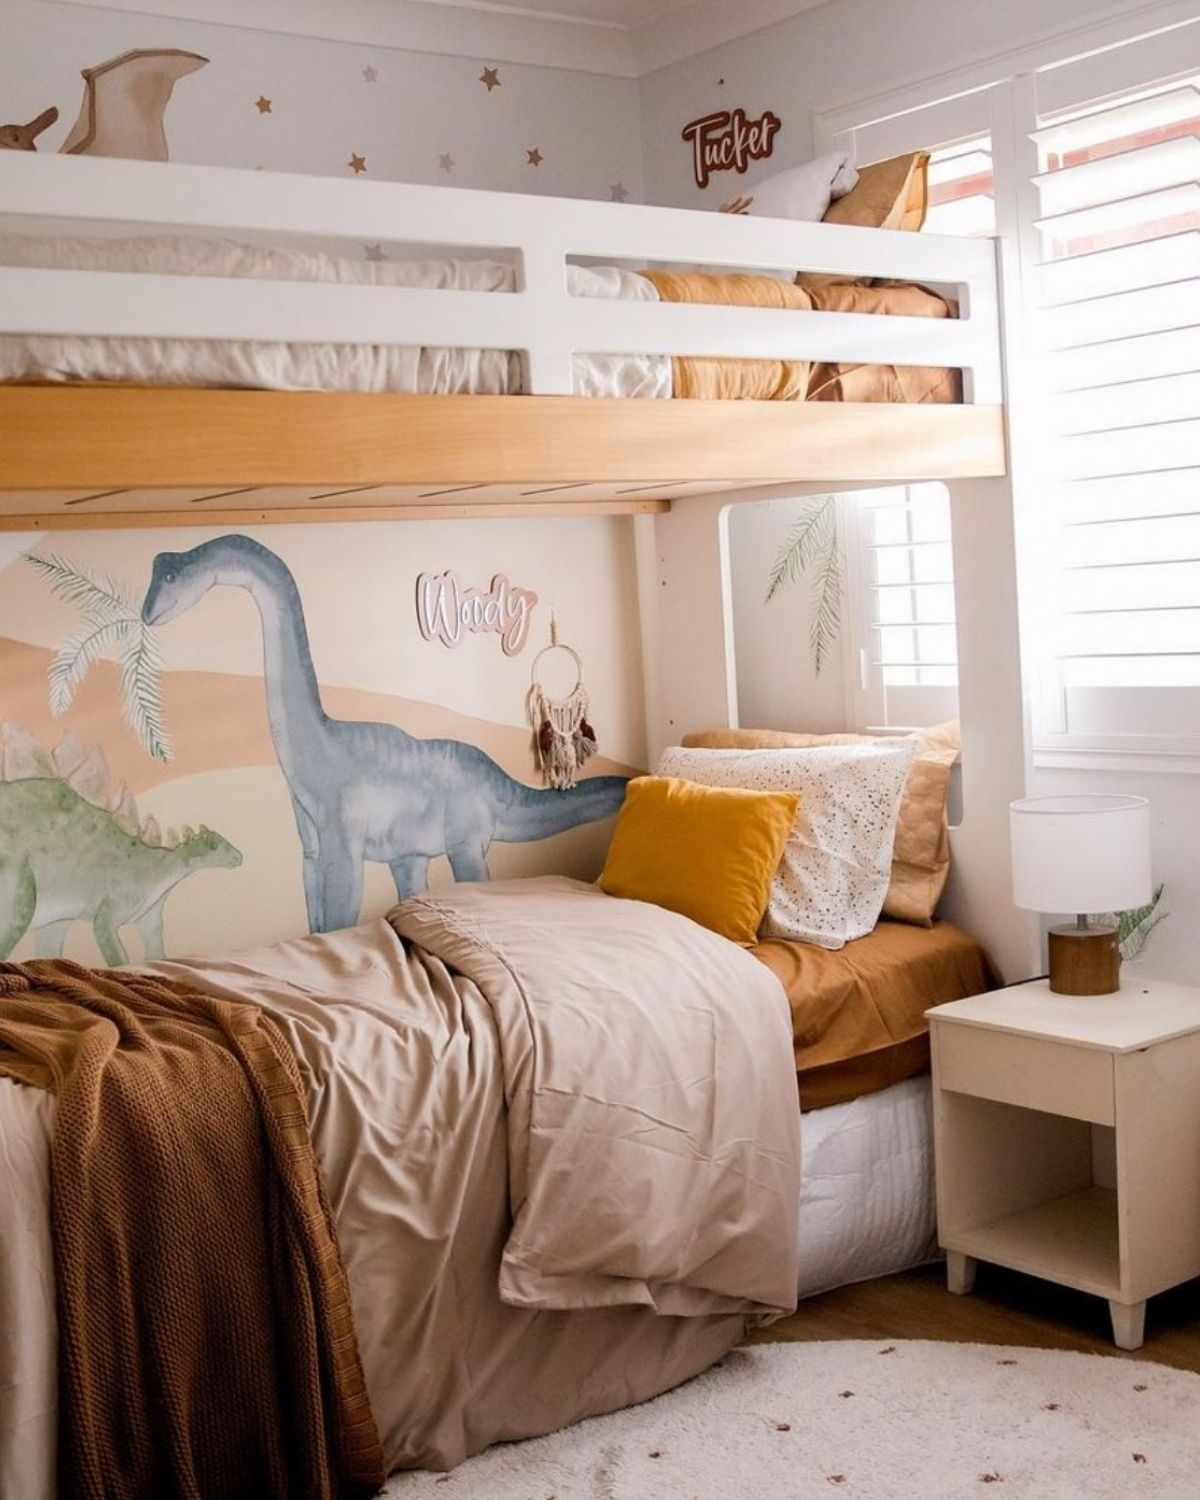 Hunter & Nomad - WOODY & TUCKER'S ROOM by @my.little.cutie.pies - 1